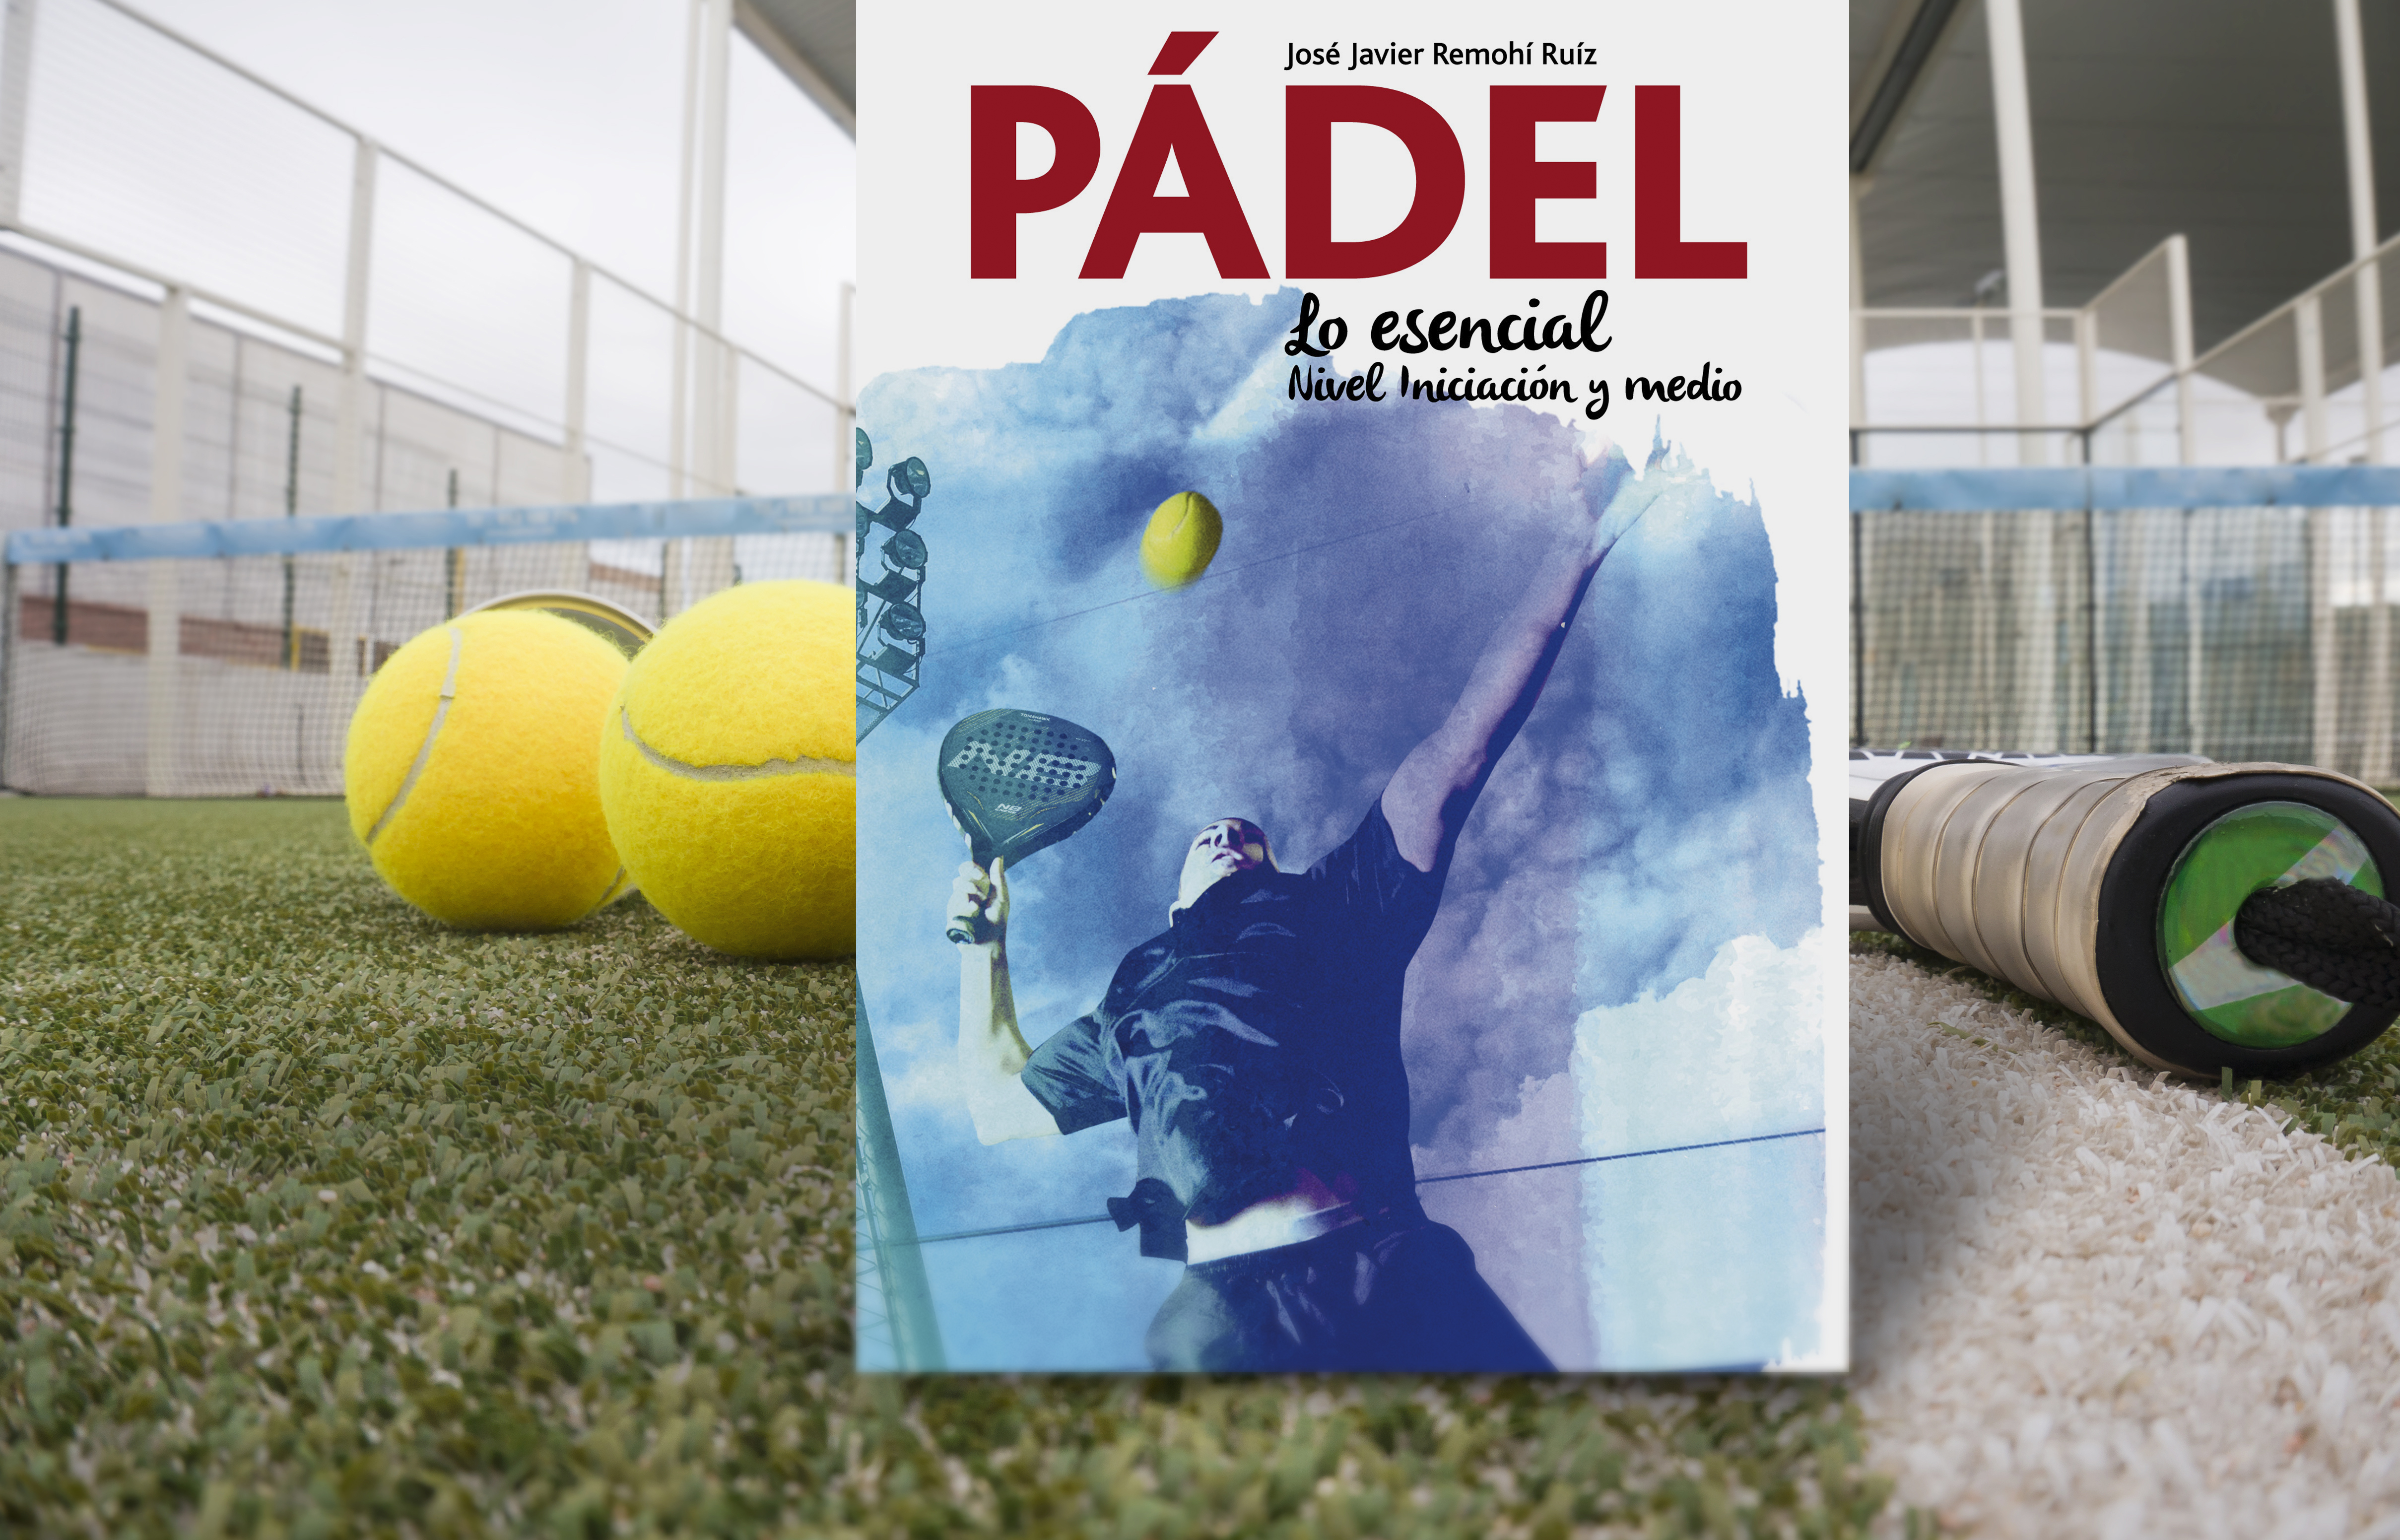 Paddle tennis objects in court, balls and racket